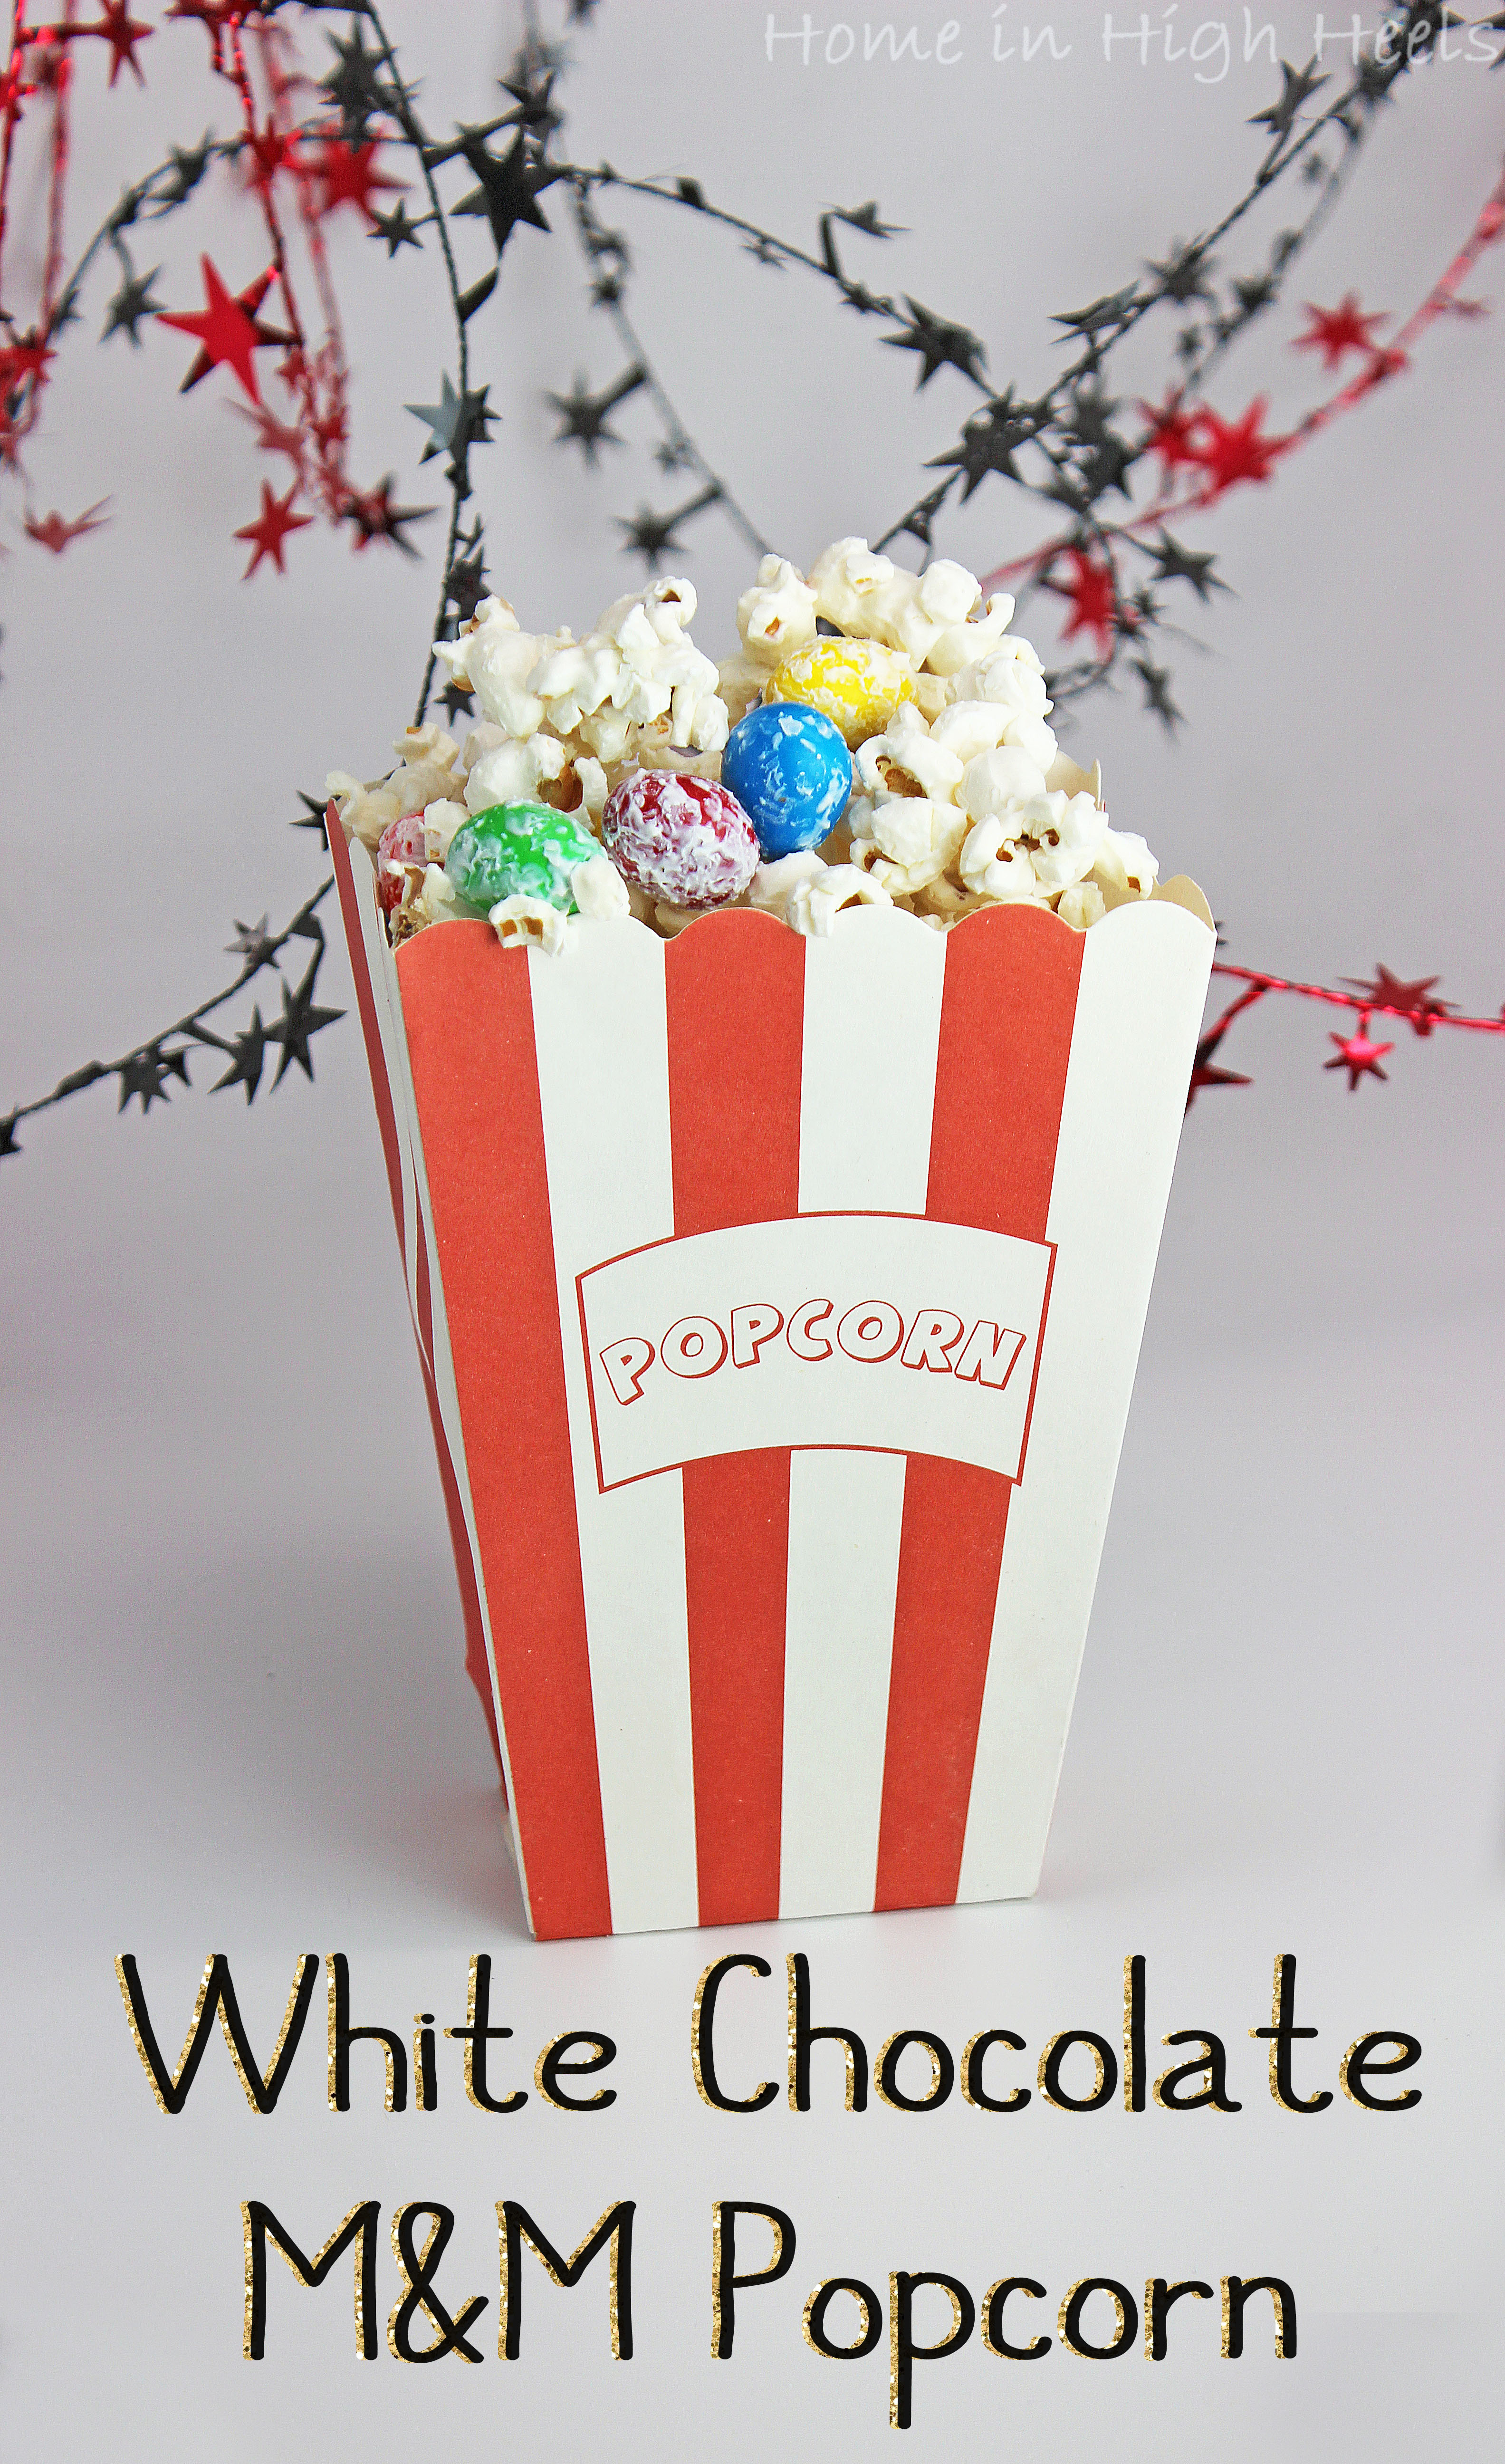 This White Chocolate M&M Popcorn Recipe is the Perfect Mix for Parties! Get party ready FAST with this kid-friendly adult-pleasing snack mix that you can really customize! from Home in High Heels